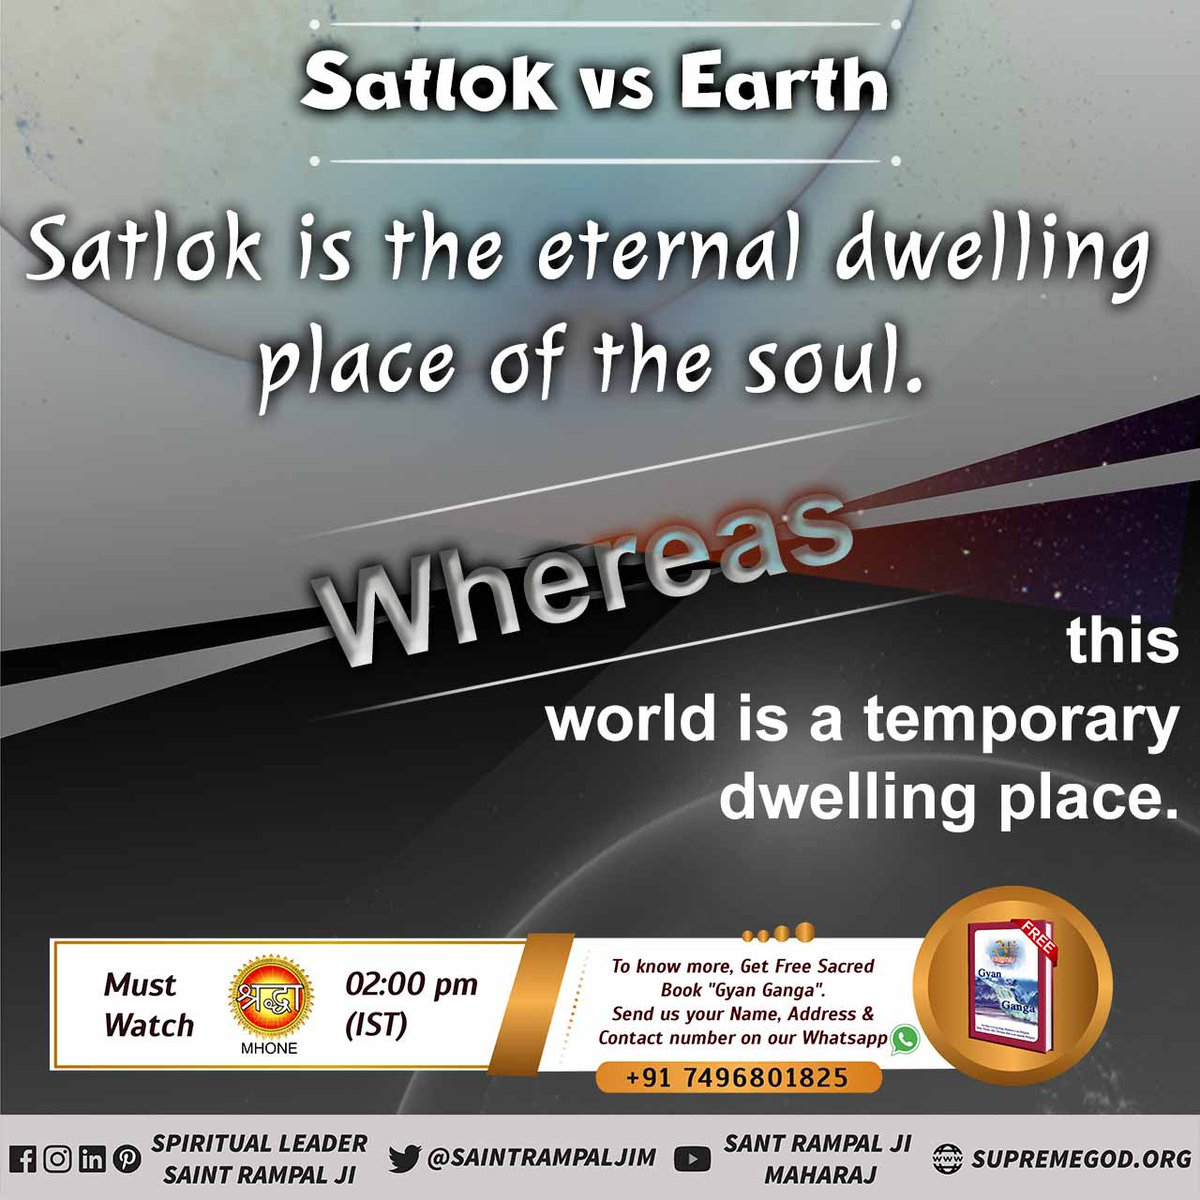 #FridayMotivation  Satlok Vs Earth 🌎  Satlok is the eternal dwelling place of the soul. Whereas this world is a temporary dwelling place.   Watch Sadhna tv 07:30pm